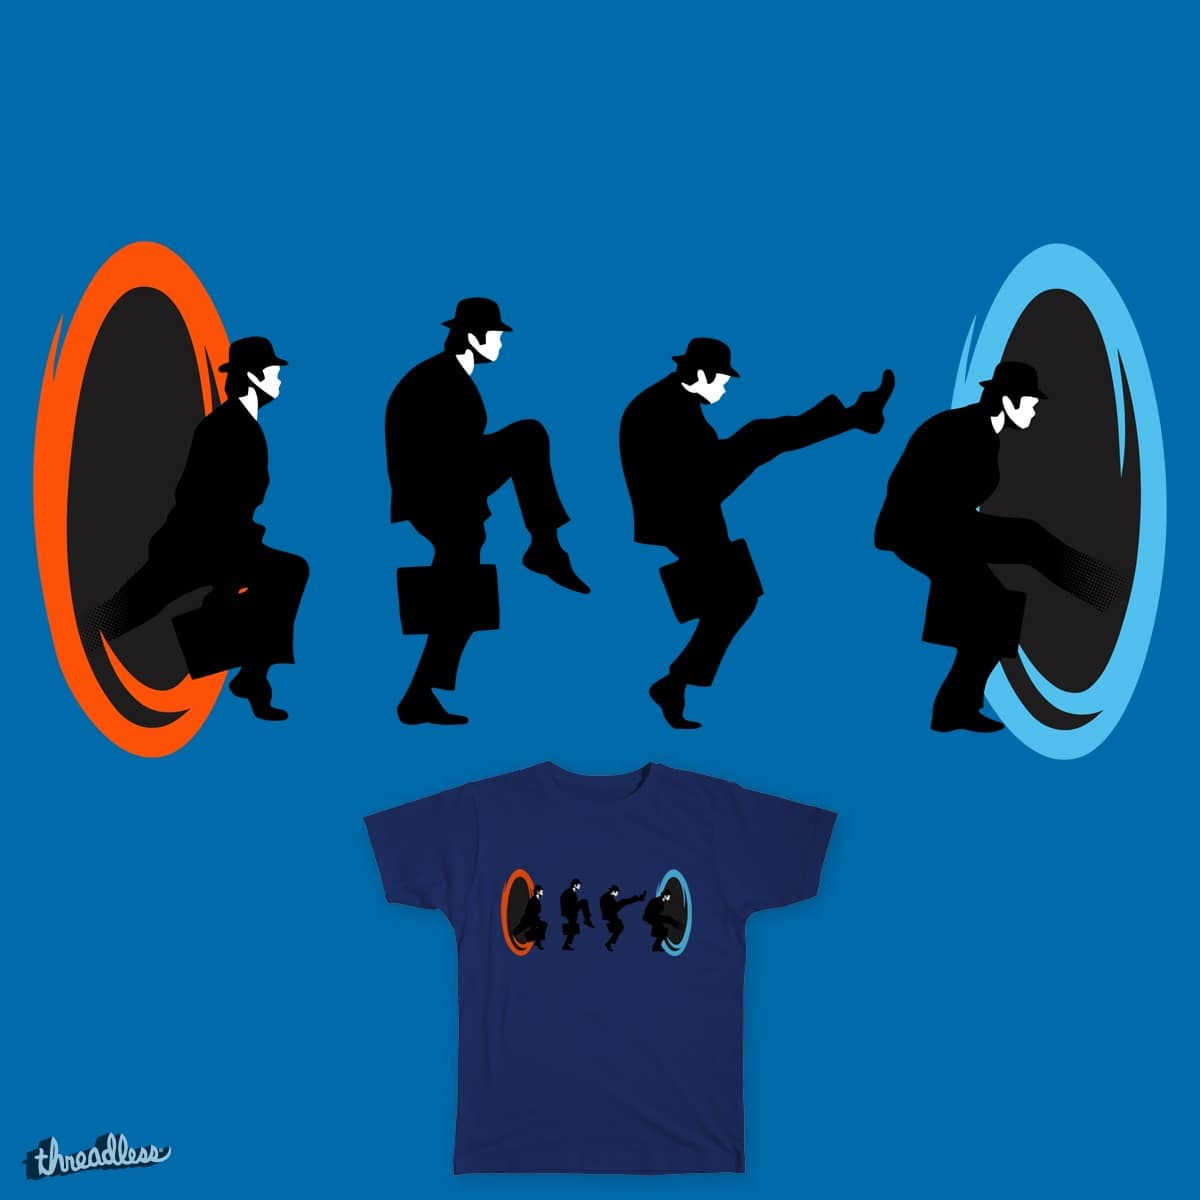 Ministry of Silly Portal by maped on Threadless